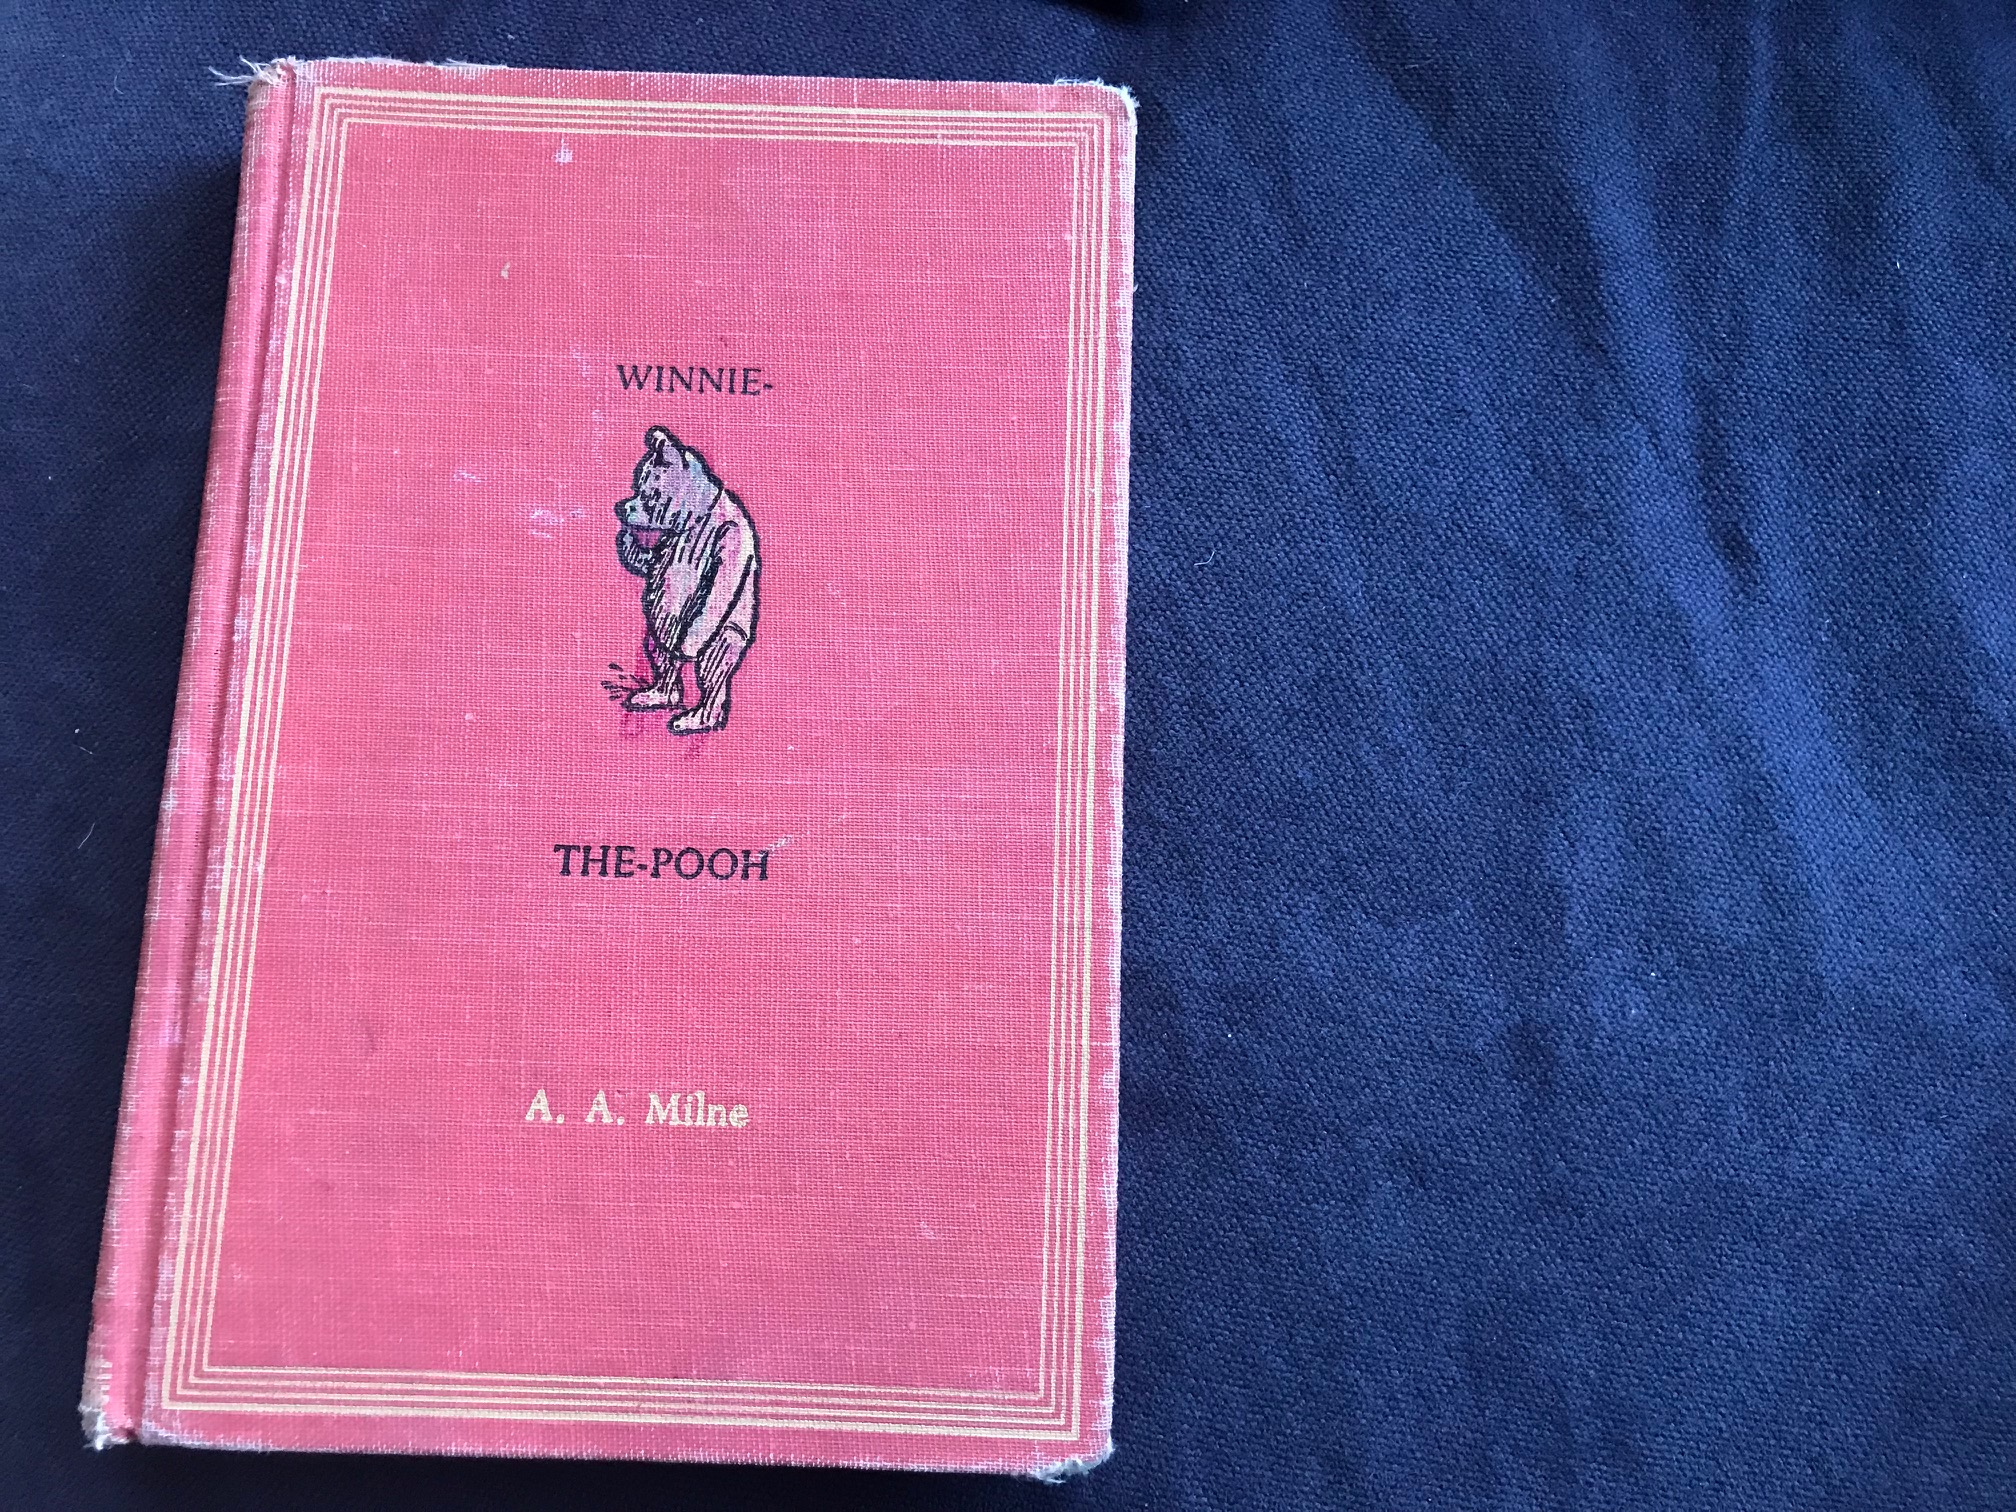 Vintage Winnie The Pooh Book, 1954 Cloth Cover